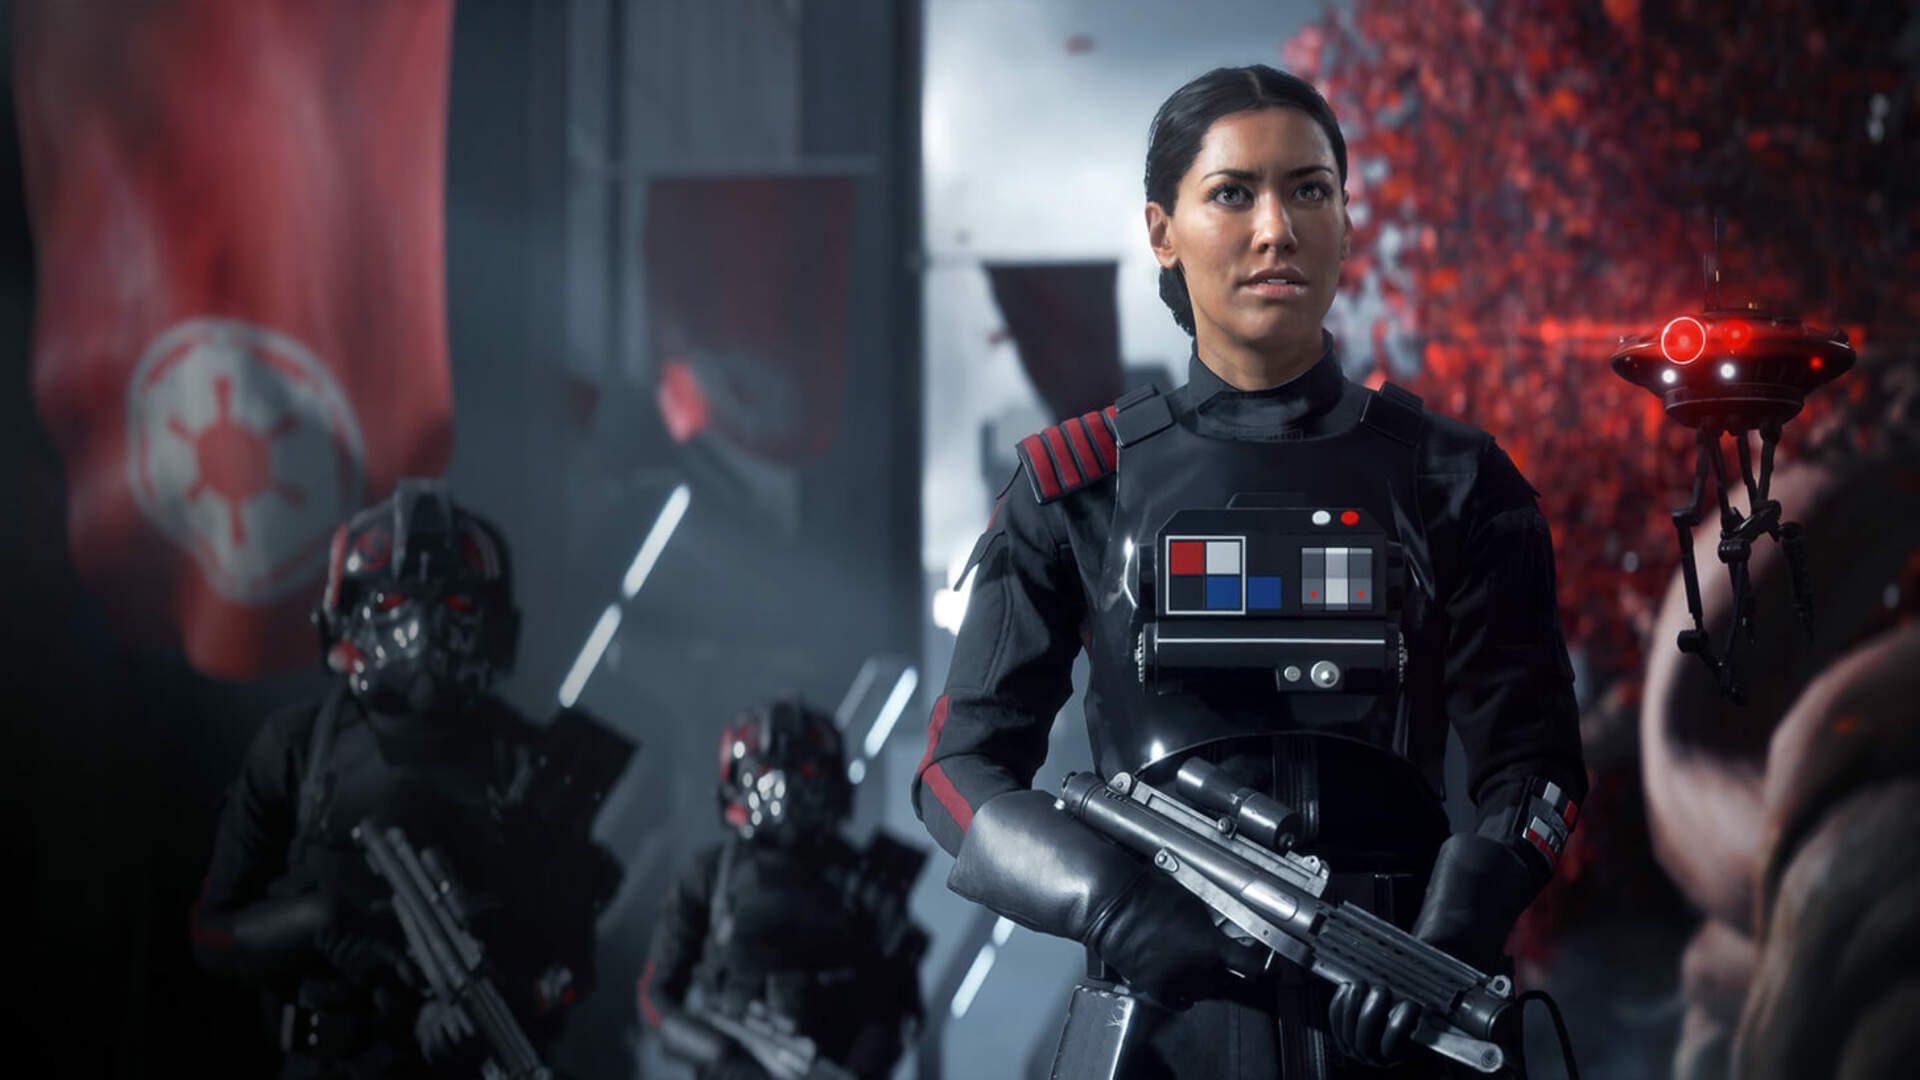 Disney Admits It's Not So Great at Publishing Video Games, Prefers Licensing to EA